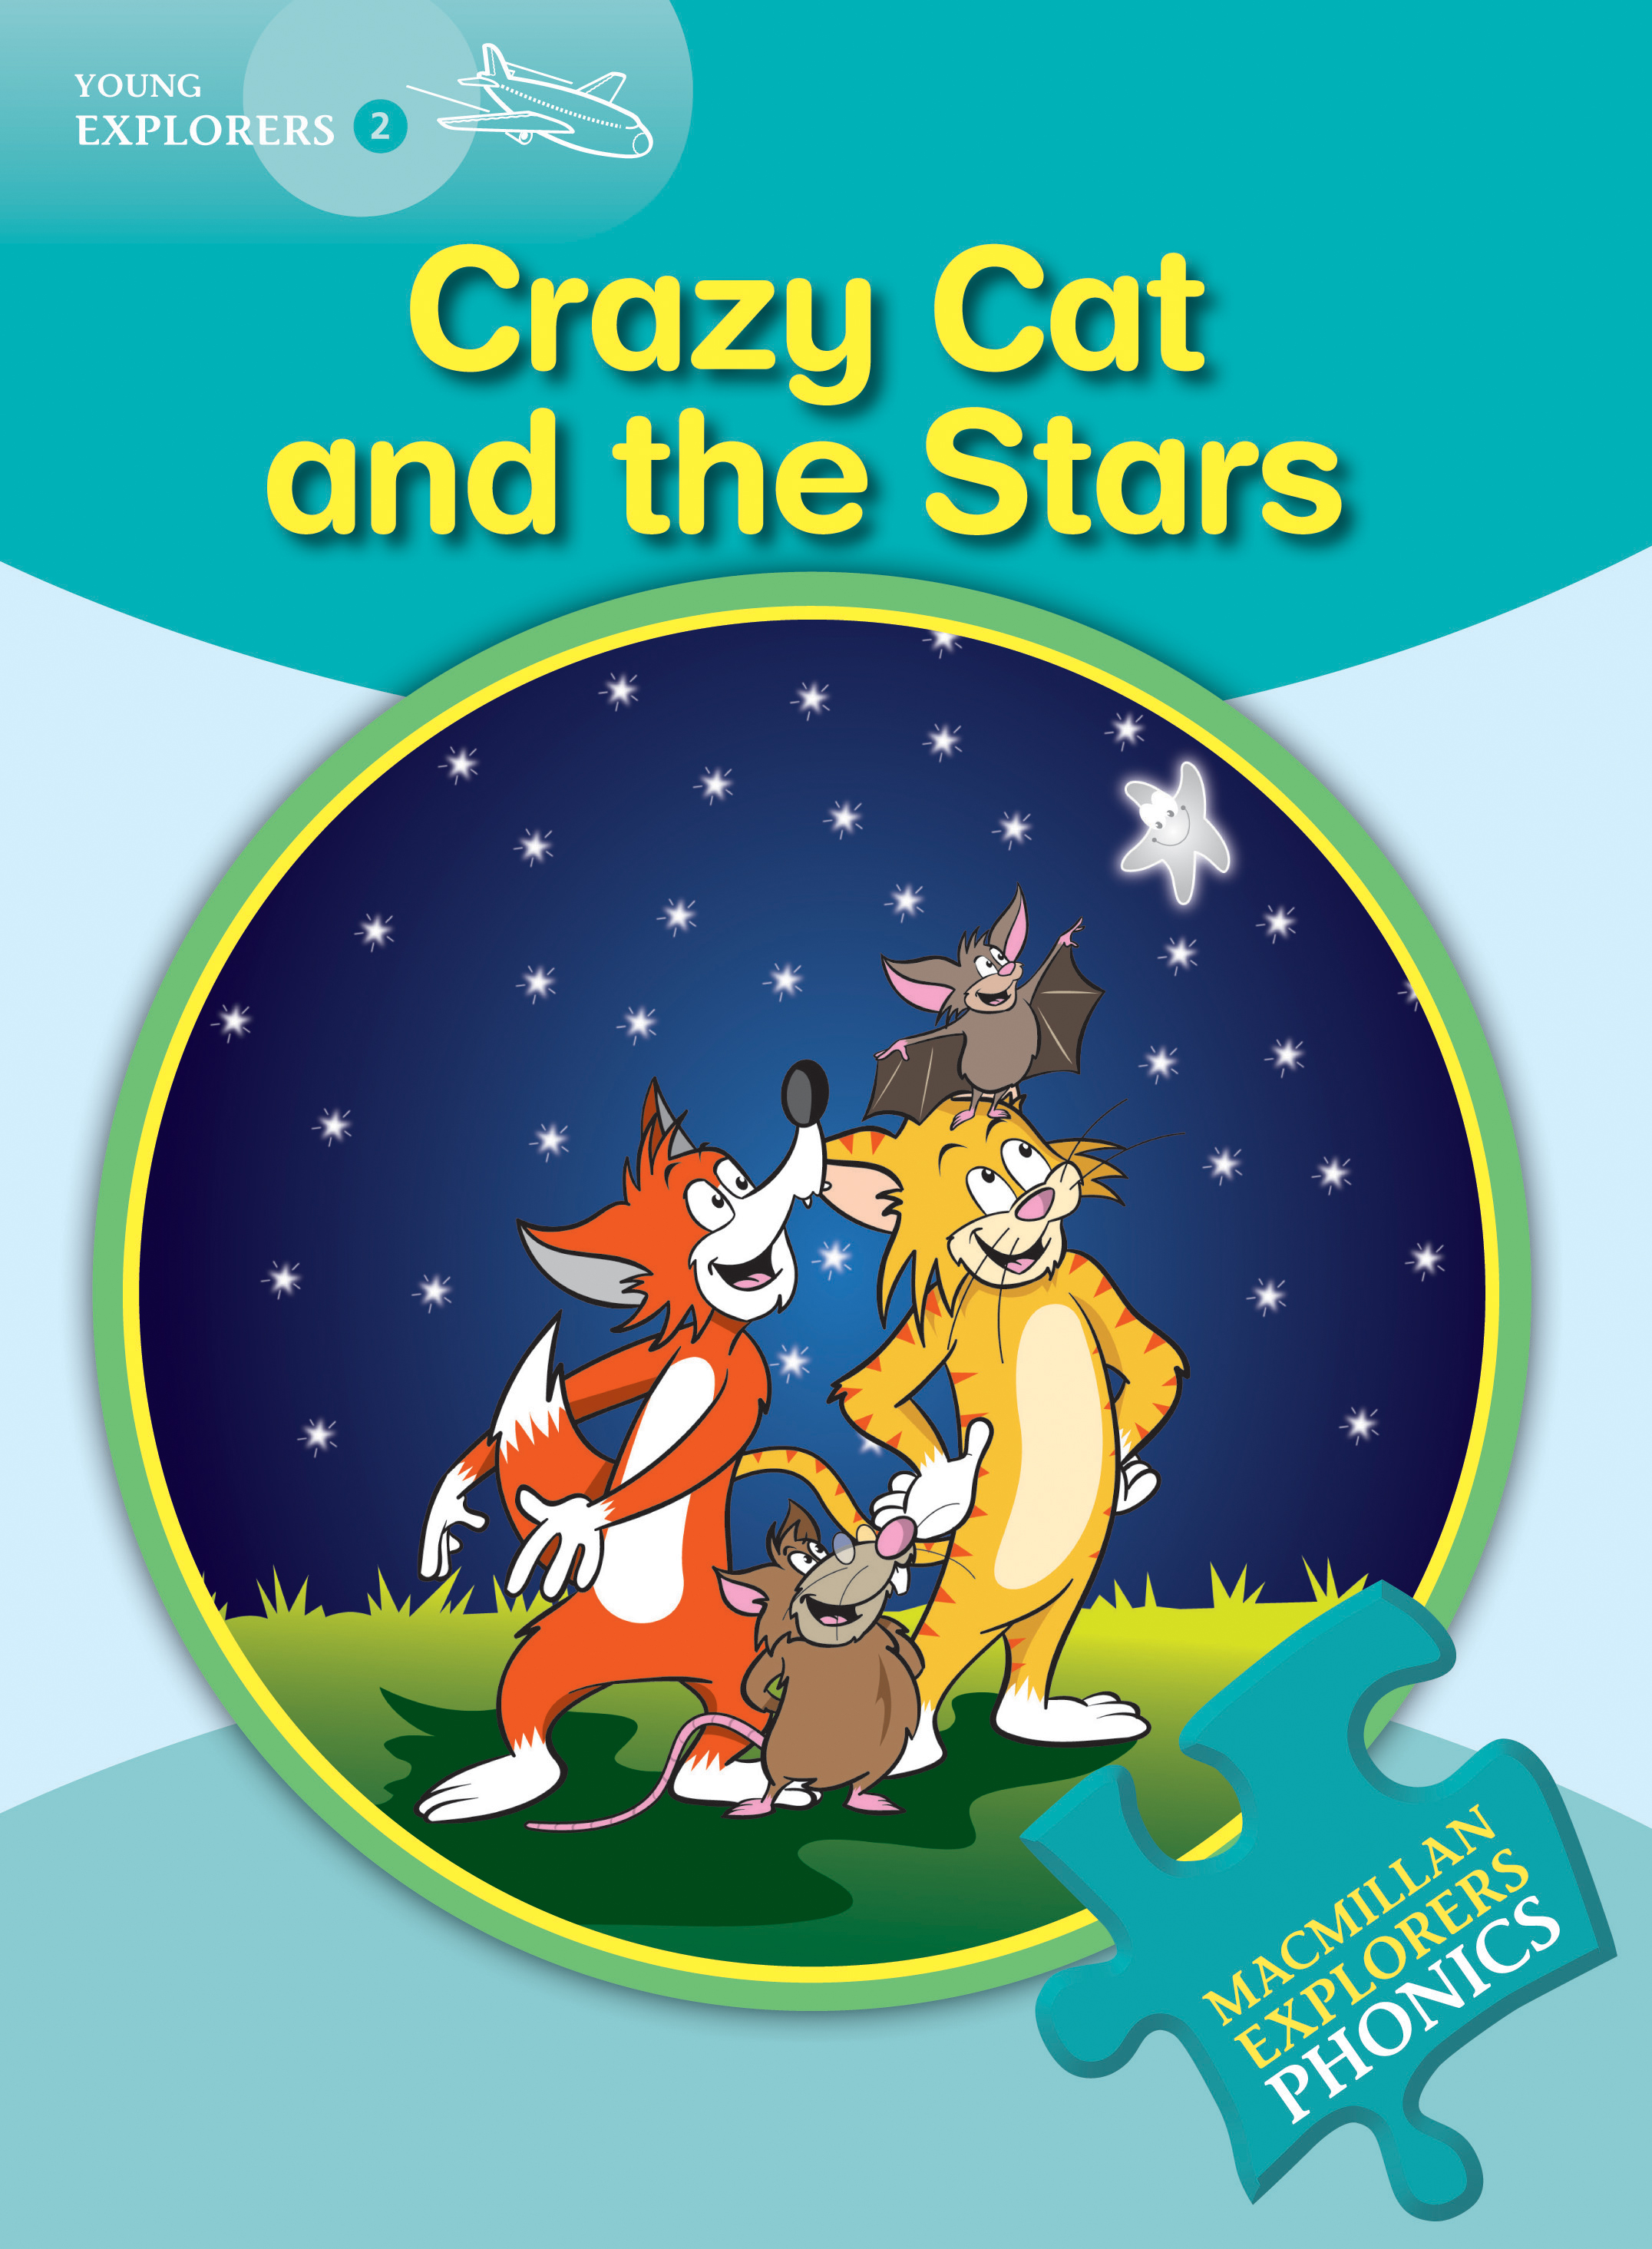 Young Explorers 2: Crazy Cat and the Stars